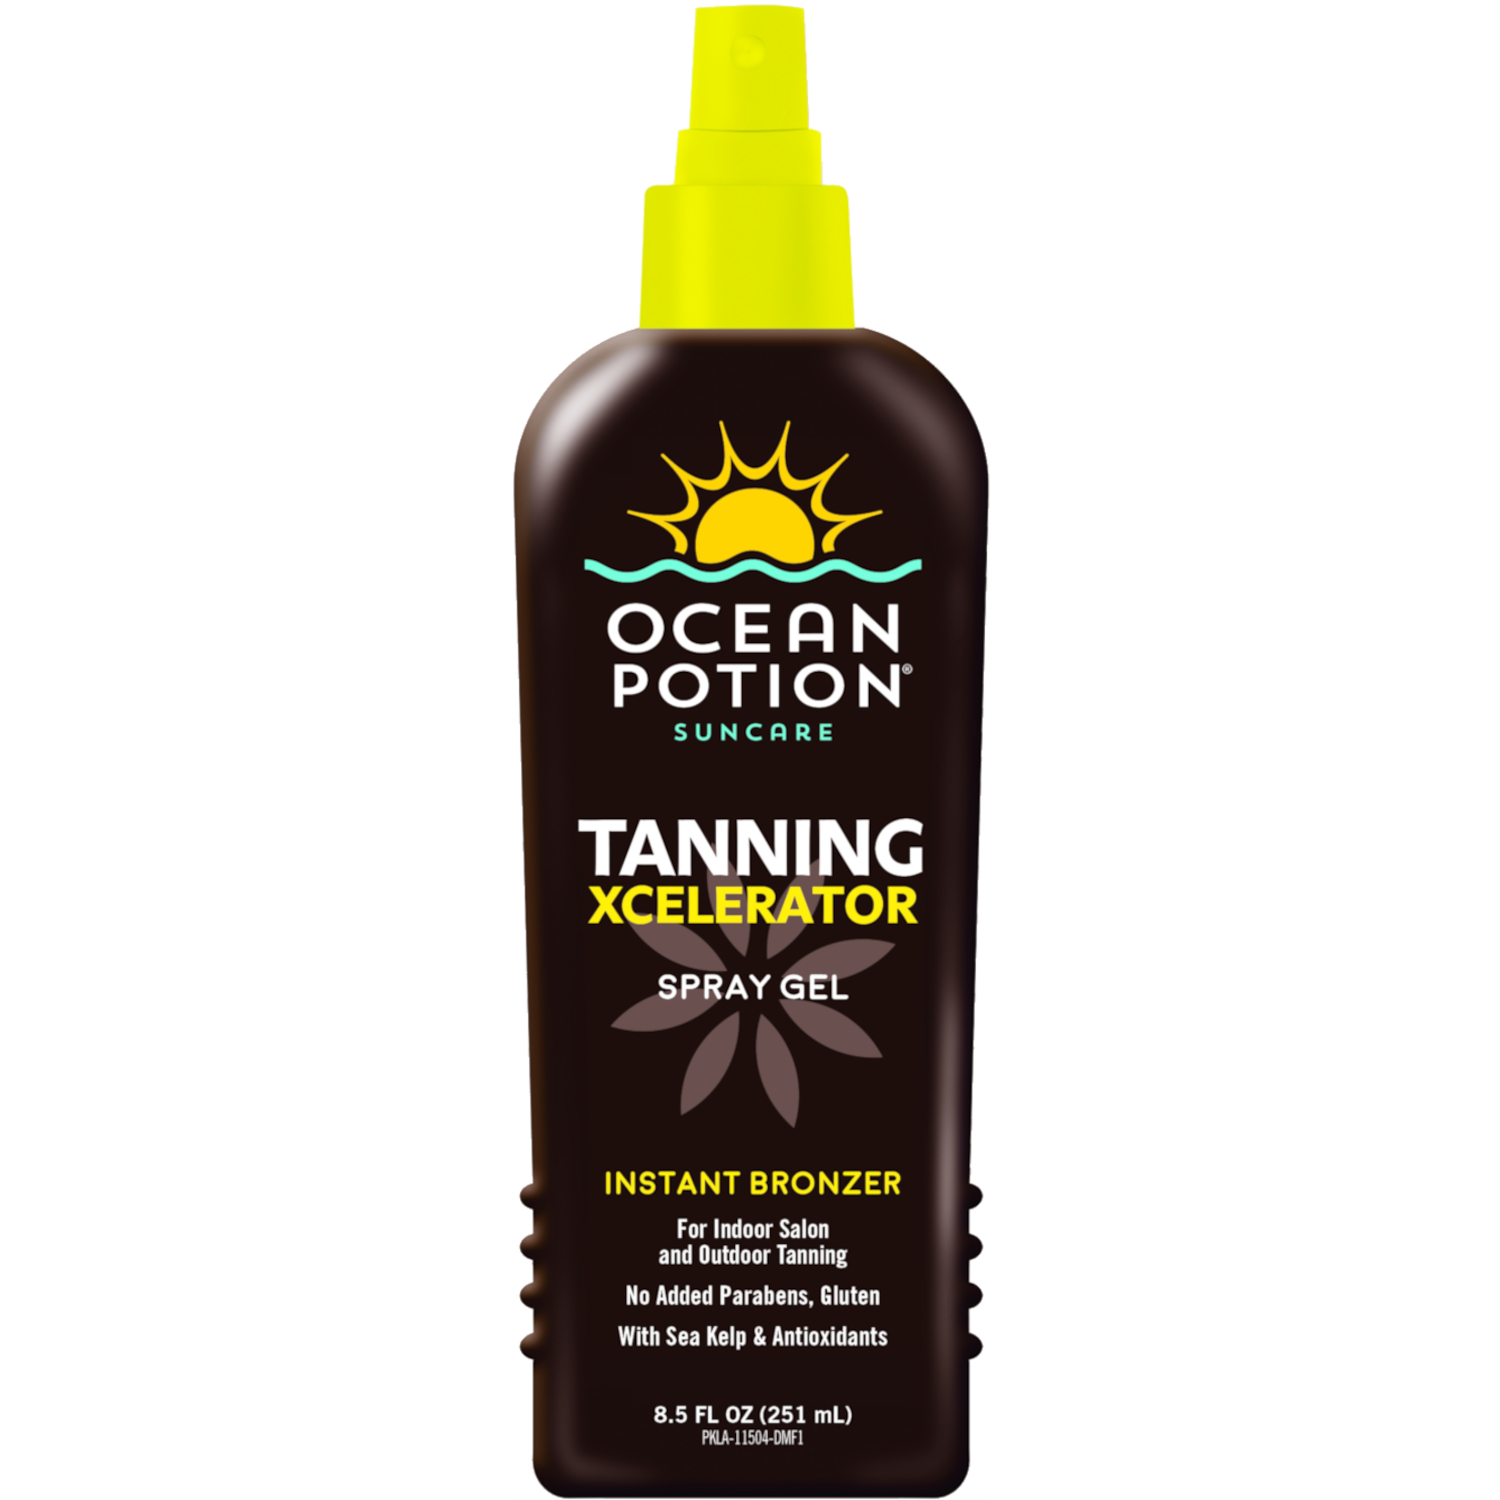 Ocean Potion Xcelerator Xtreme Tanning Spray Gel, 8.5 fl oz